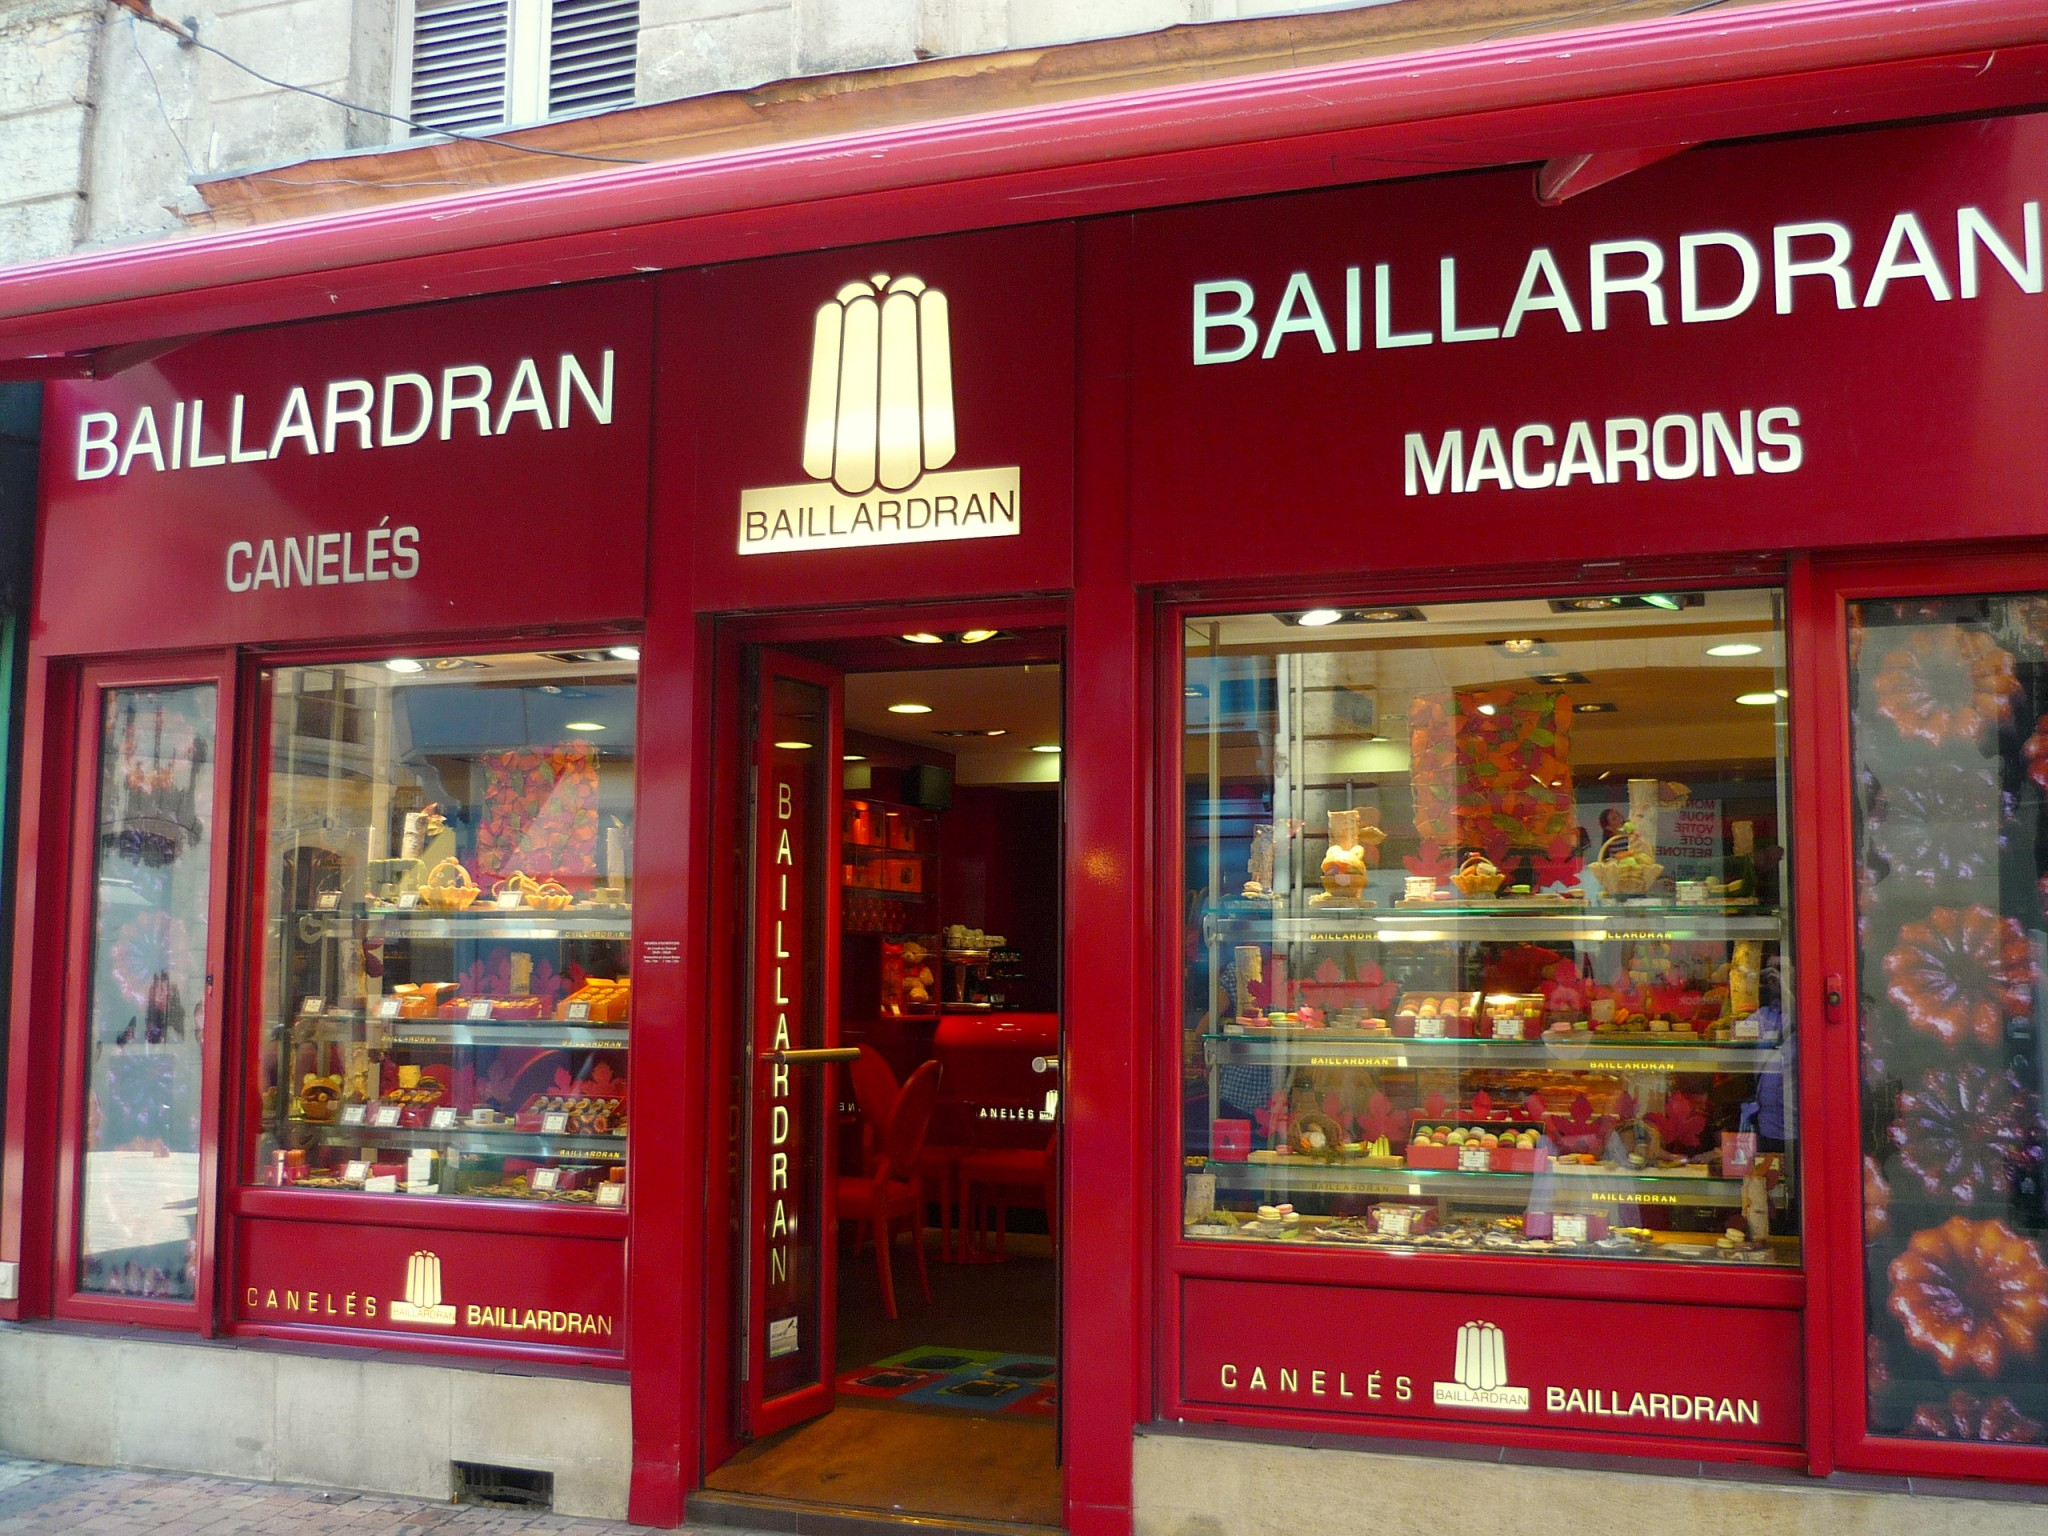 Baillardran canelés store in Bordeaux © French Moments